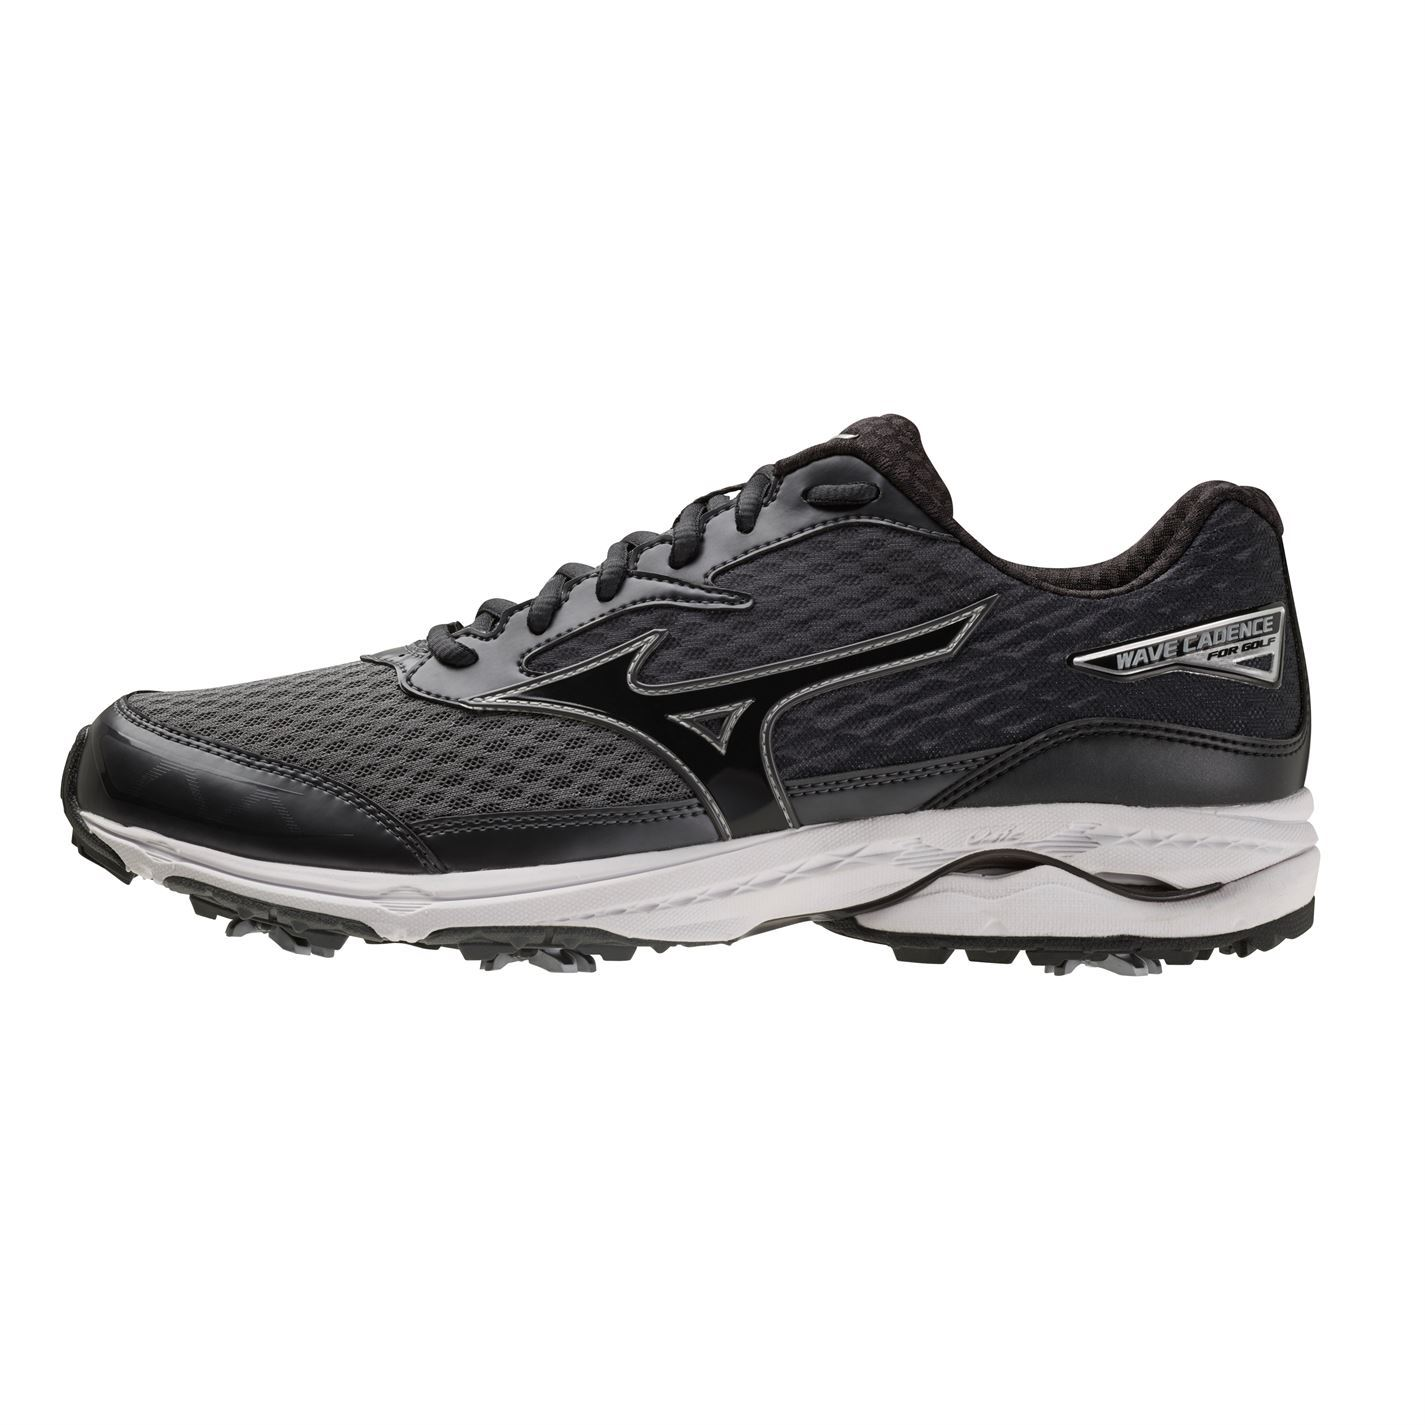 Mizuno-Wave-Cadence-Golf-Shoes-Mens-Spikes-Footwear thumbnail 4